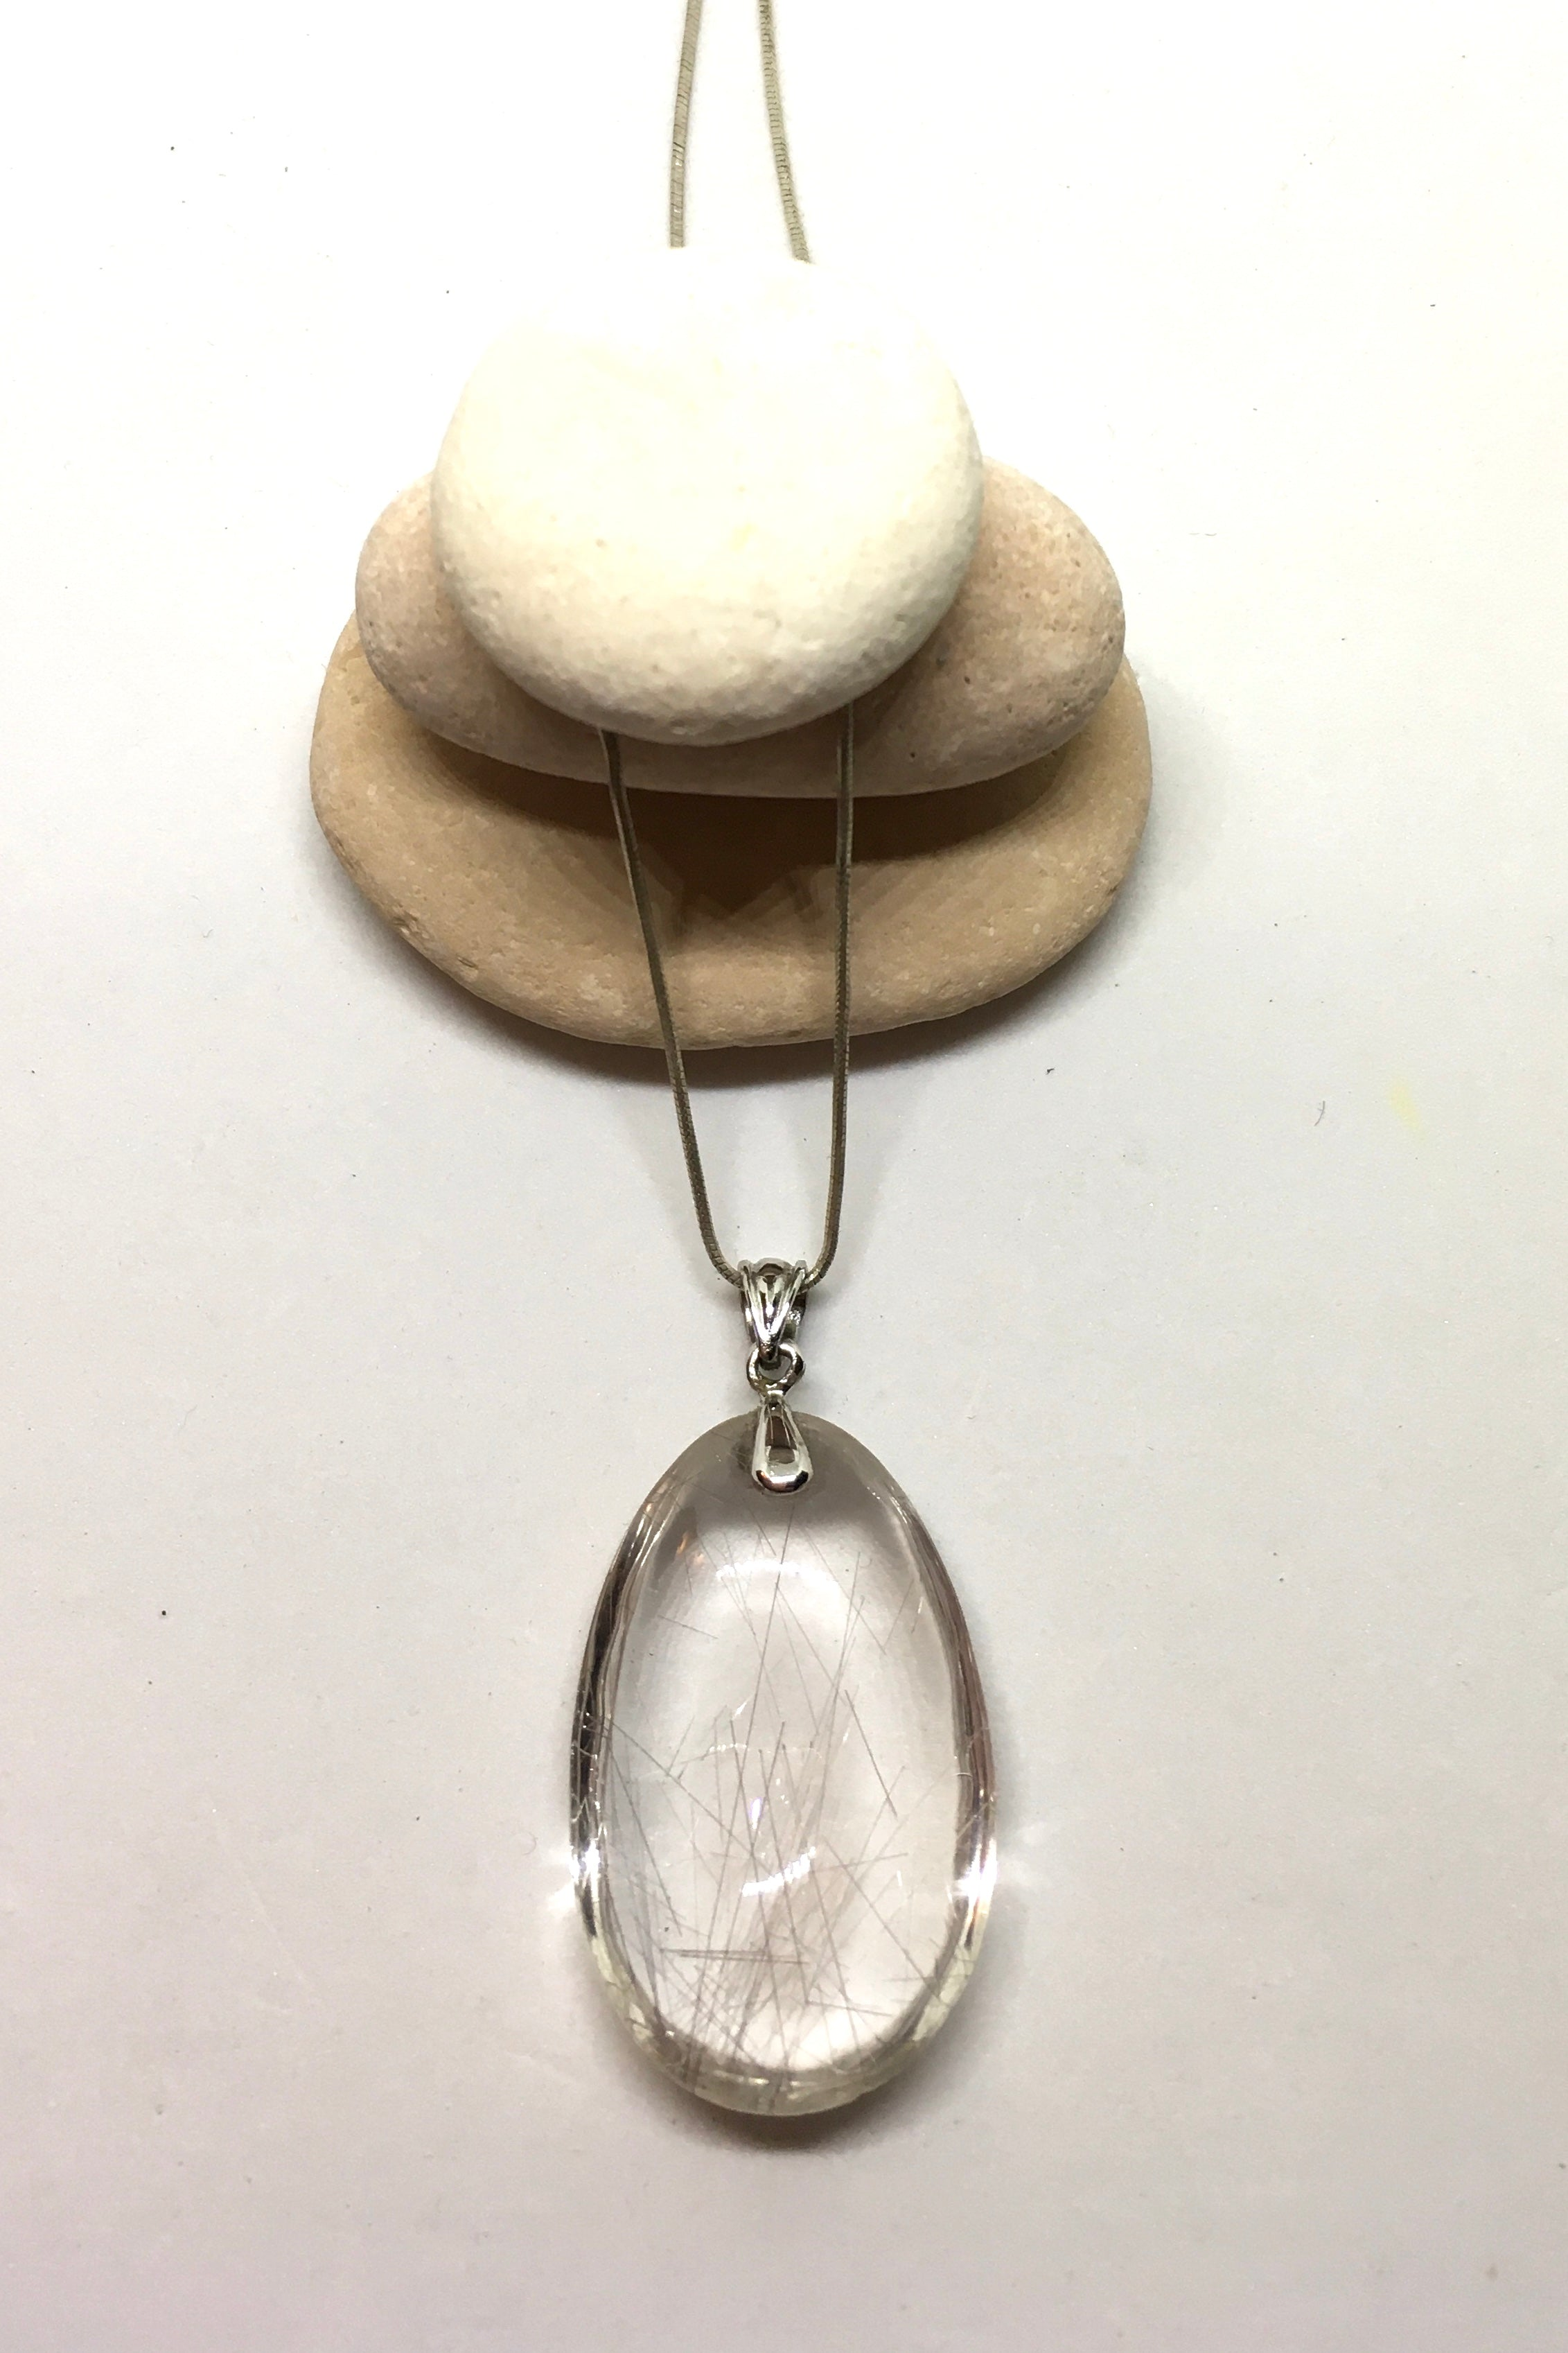 Pendant of Rutilated Quartz Crystal on a Silver Chain 2